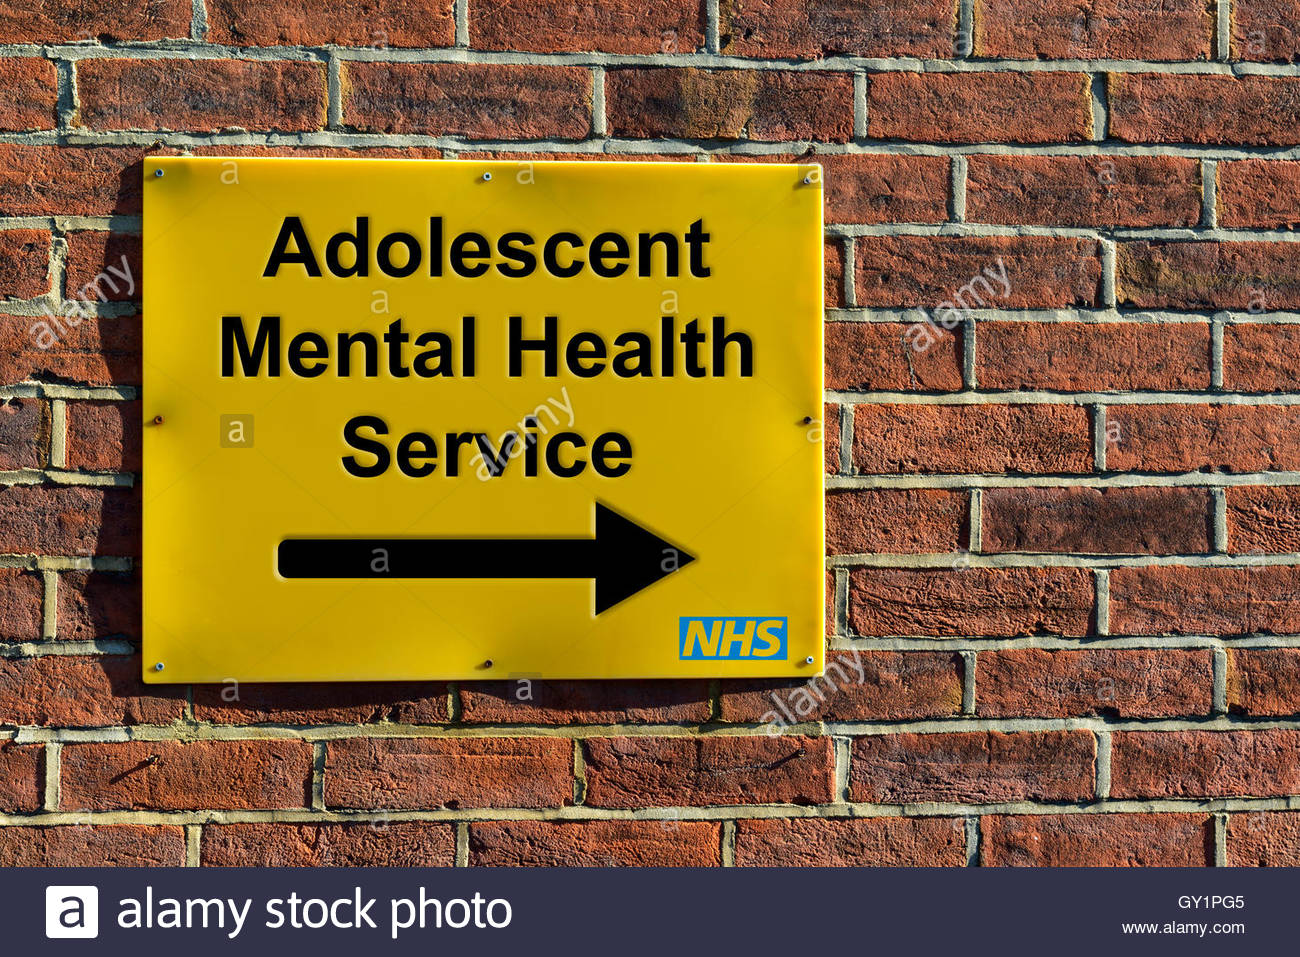 Adolescent Mental Health Service, NHS wall mounted direction sign. Stock Photo